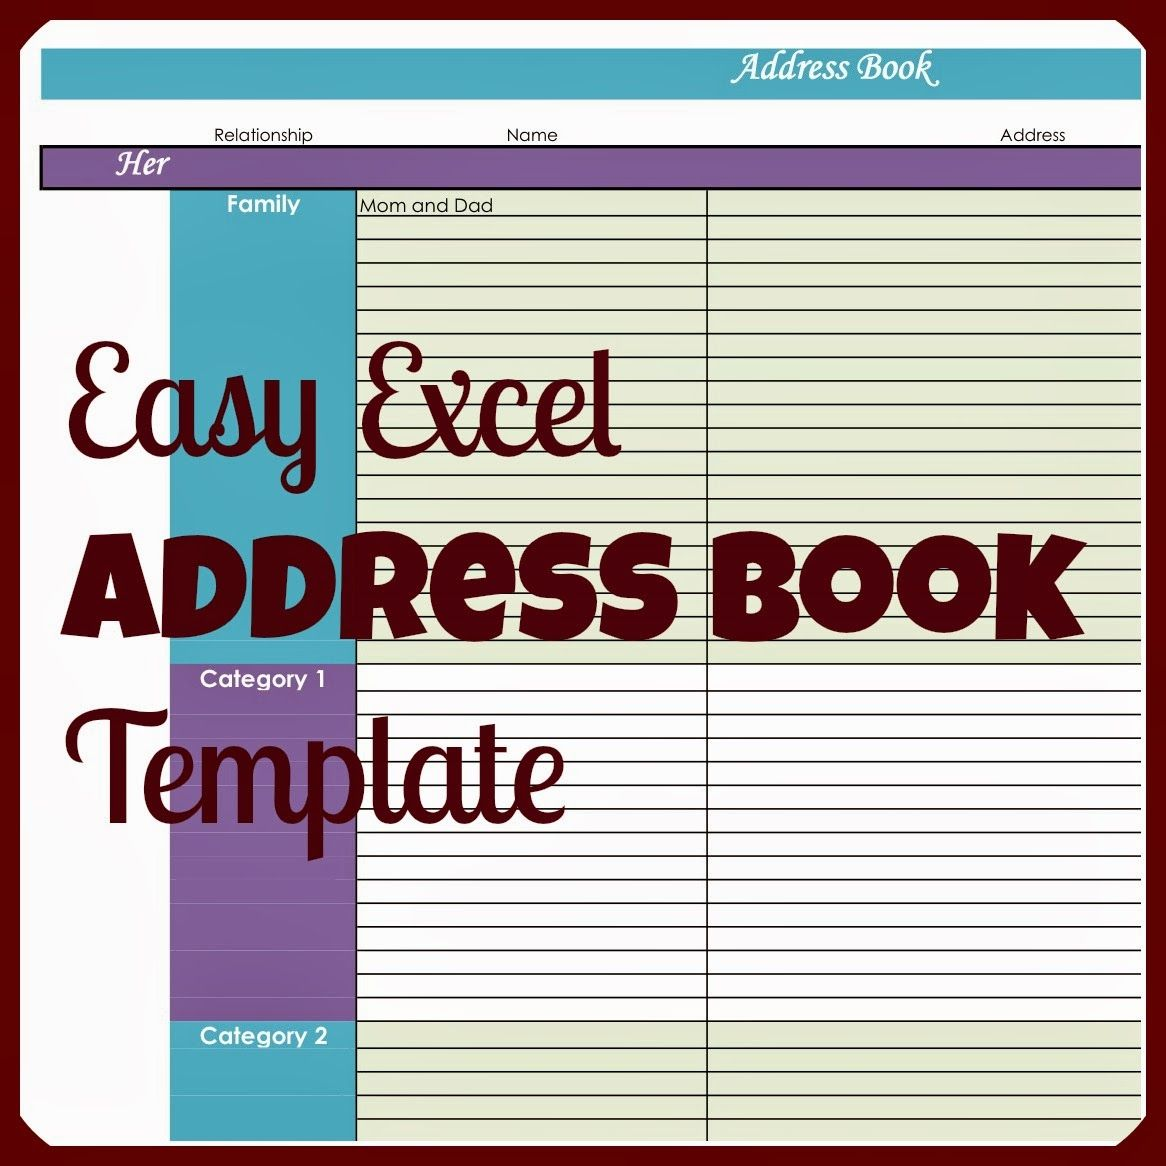 why would you ever need an address book in excel when there are so